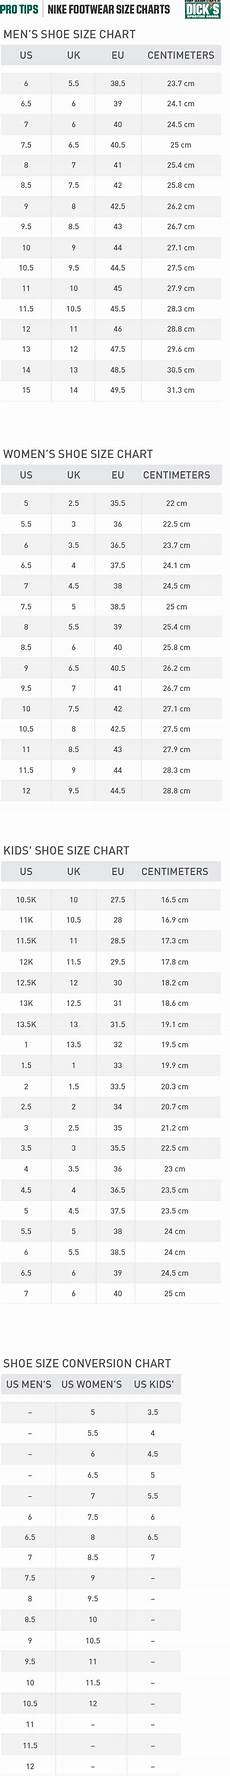 Nike 7y Size Chart Nike 174 Footwear Size Charts Pro Tips By S Sporting Goods